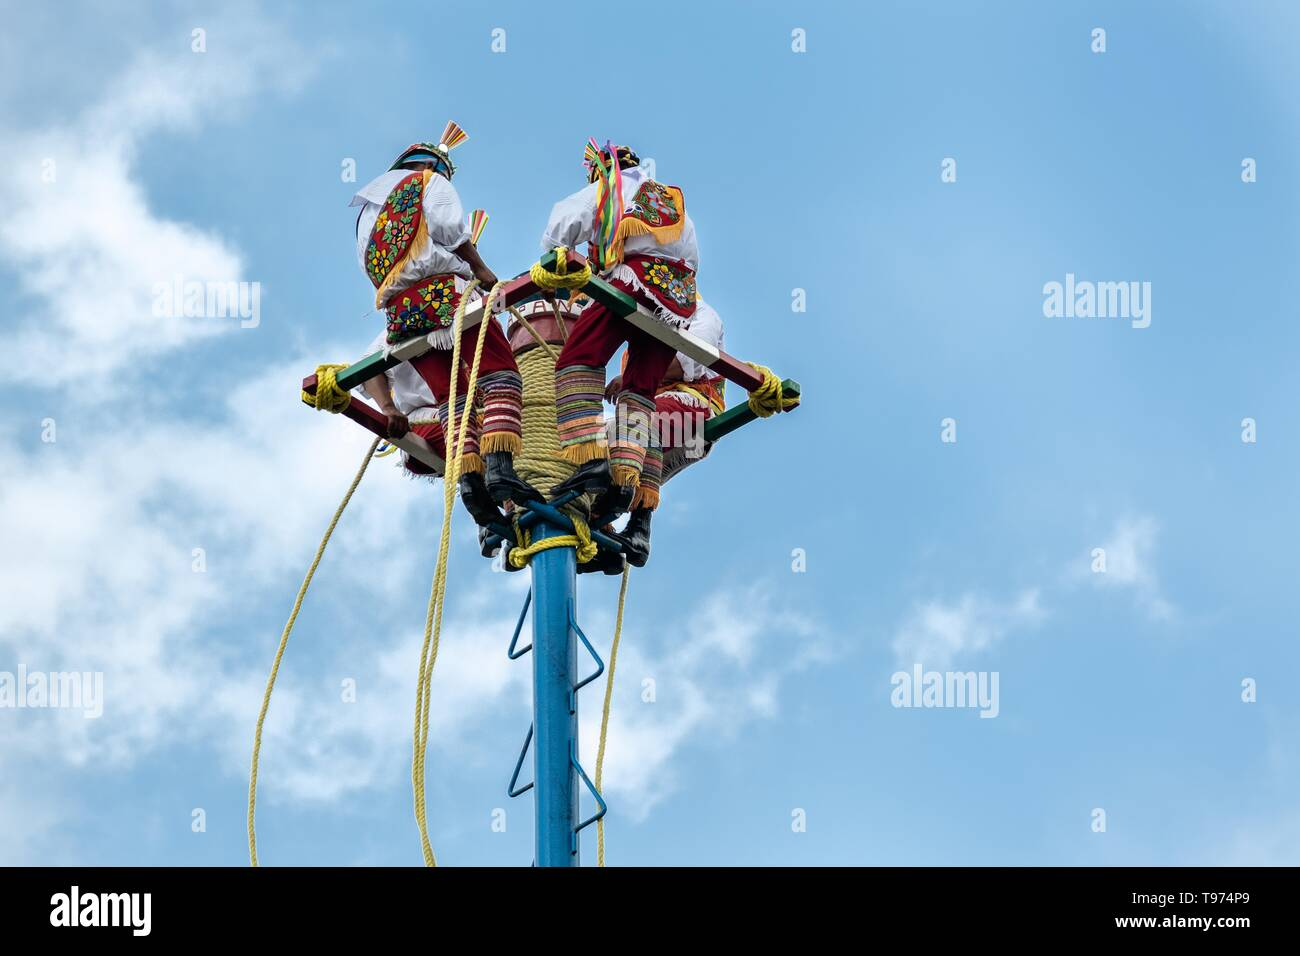 A Voladores position themselves at the top of a thirty-meter pole to perform the sacred ceremonial dance in the Parque Takilhsukut at the pre-Columbian archeological complex of El Tajin in Tajin, Veracruz, Mexico. The Danza de los Voladores is a indigenous Totonac ceremony involving five participants who climb a thirty-meter pole. Four of these tie ropes around their waists and wind the other end around the top of the pole in order to descend to the ground. The fifth participant stays at the top of the pole, playing a flute and a small drum. The ceremony has been inscribed as a Masterpiece of  - Stock Image